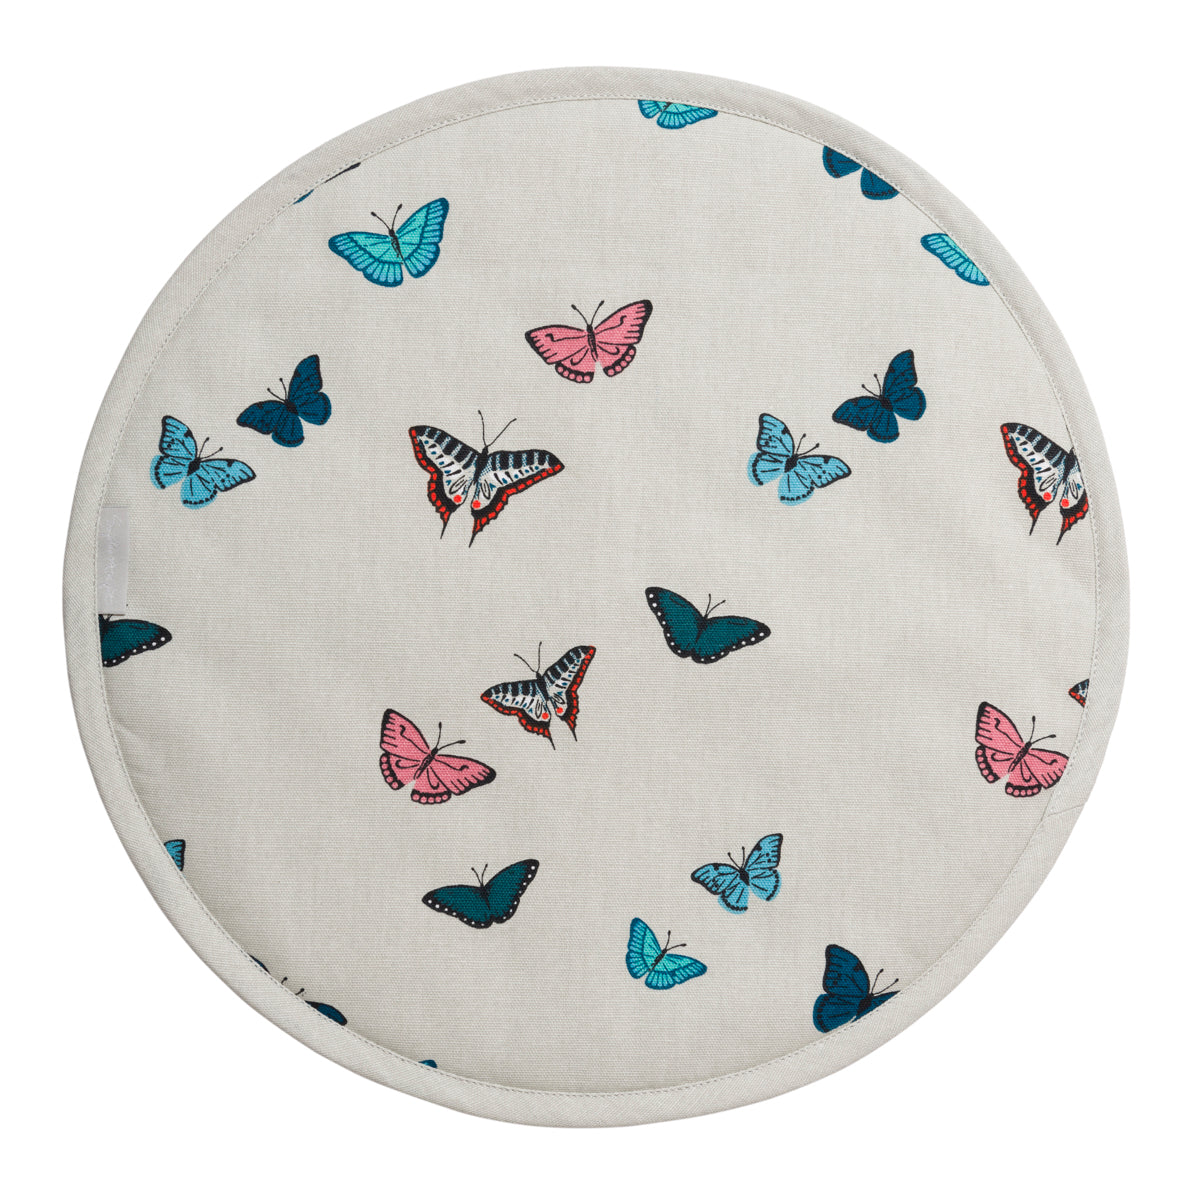 Butterflies AGA Hob Cover by Sophie Allport